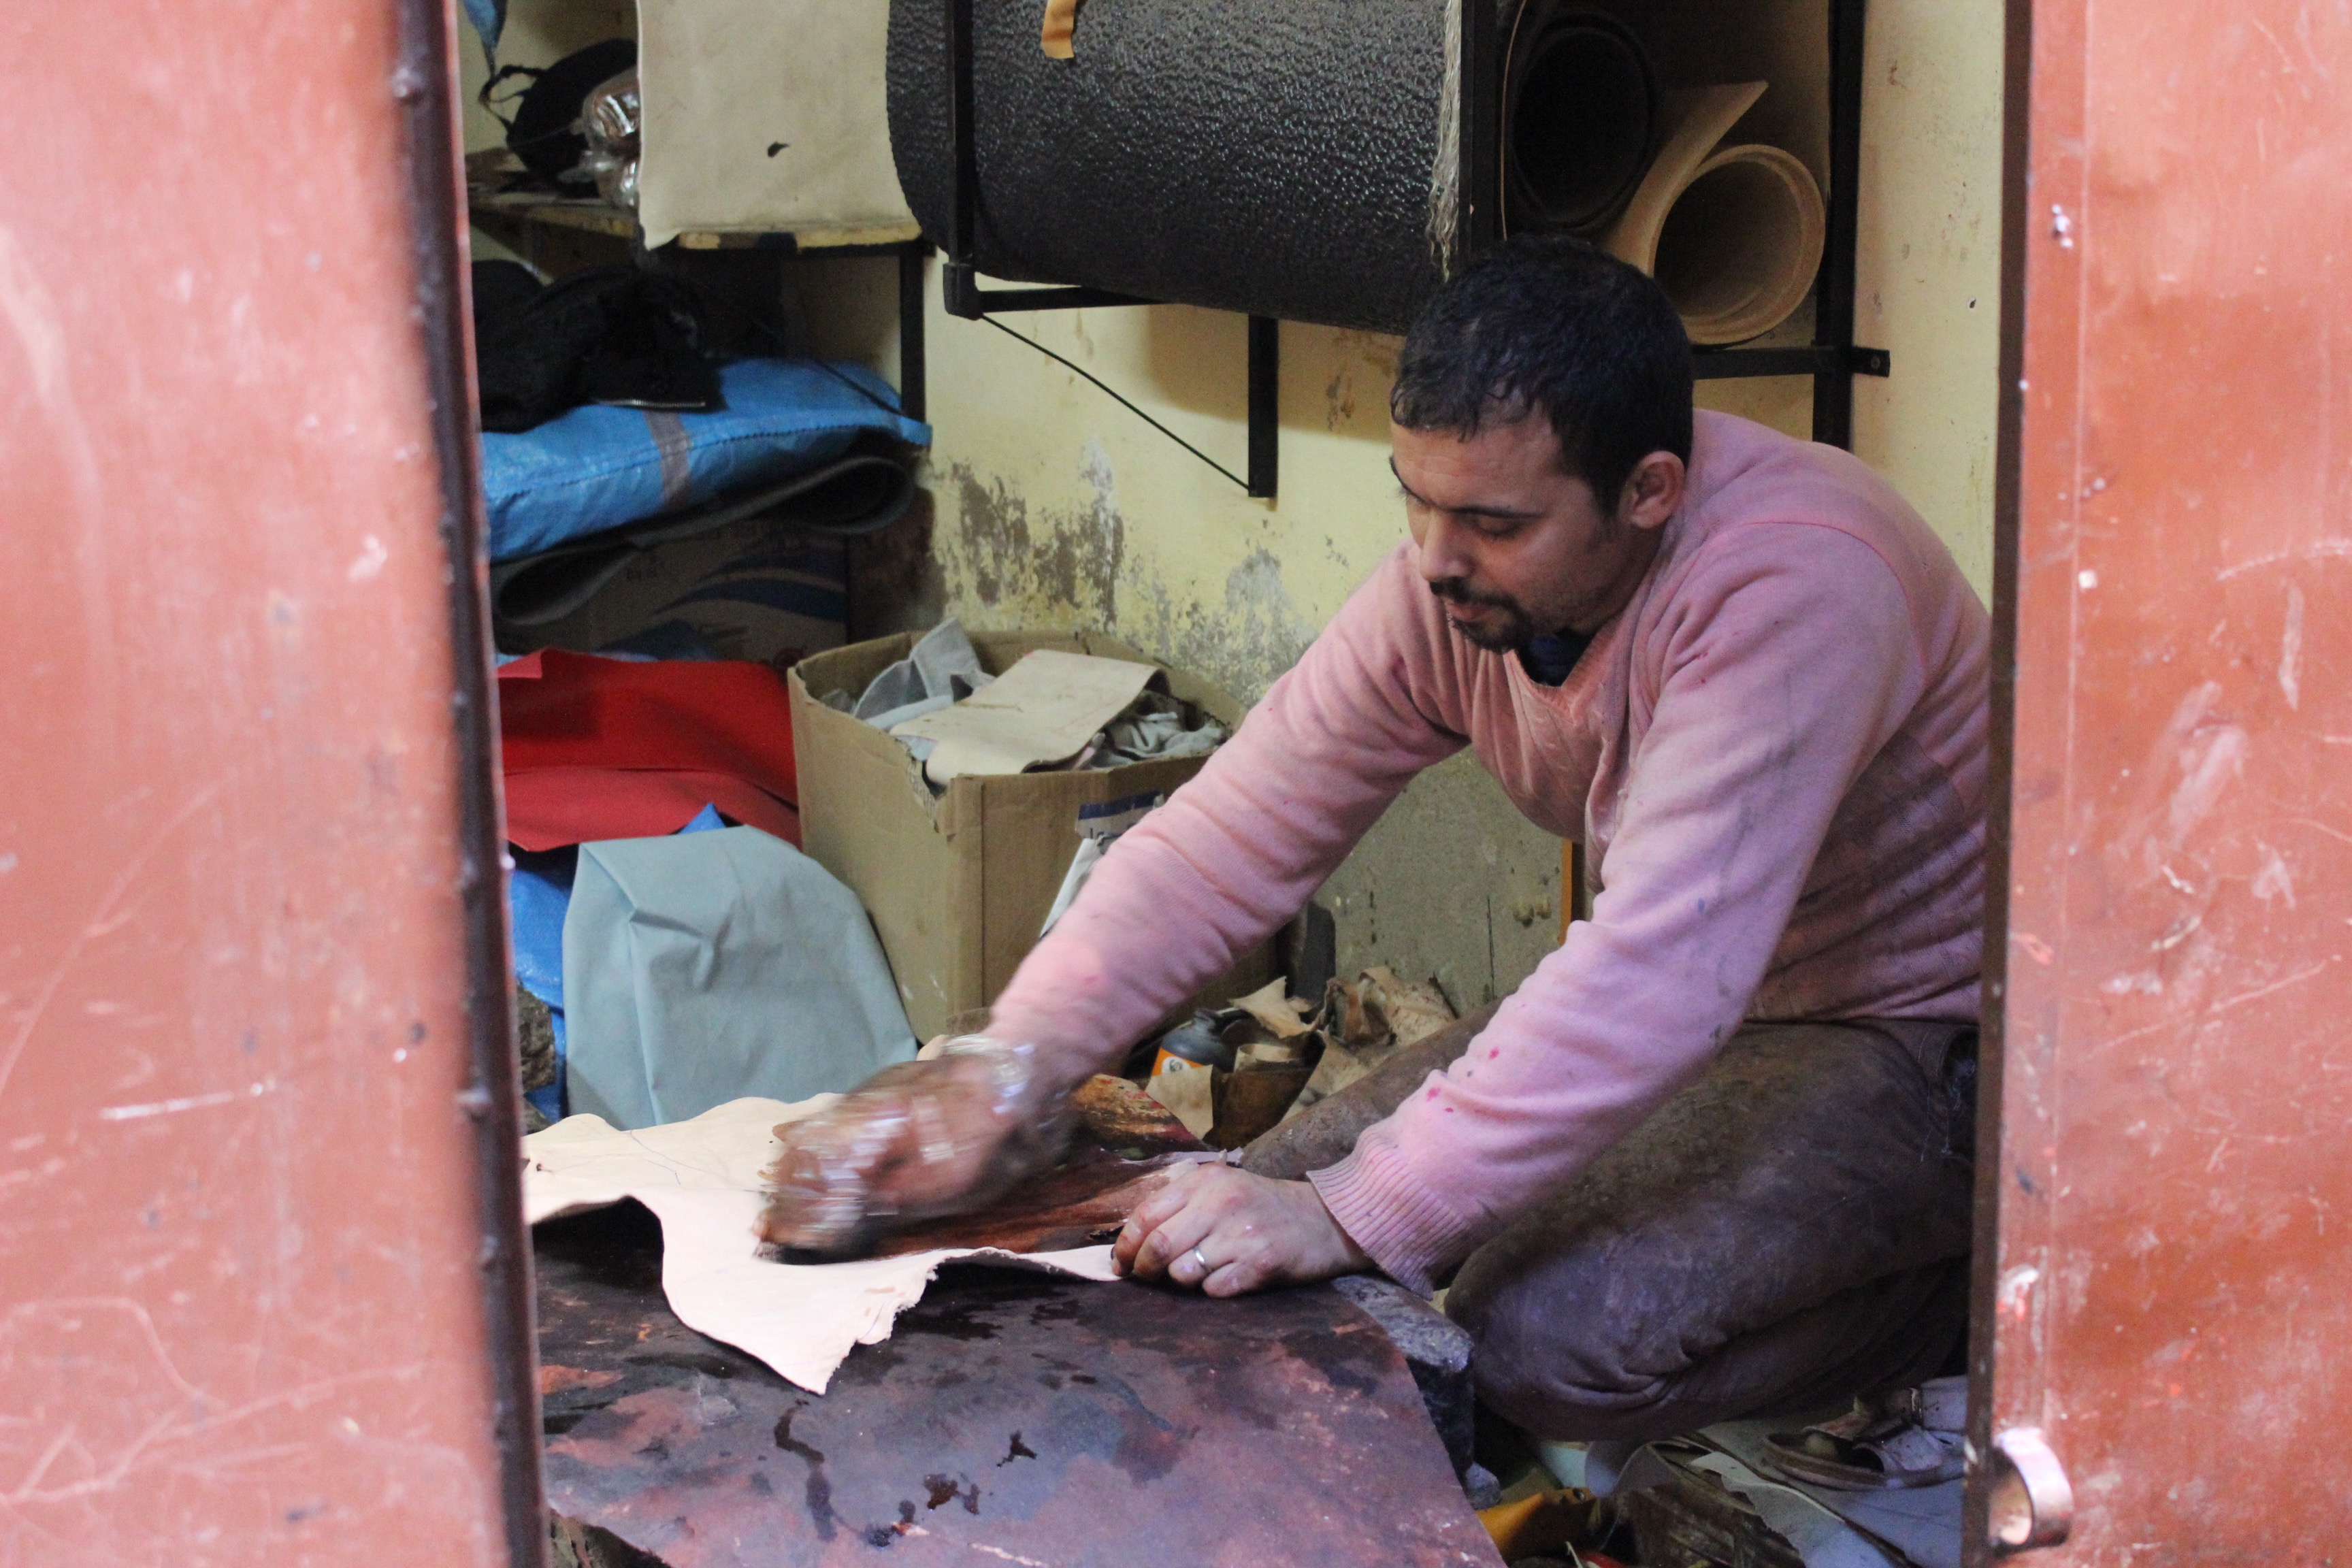 Artisan babouchier of Marrakech preparing the leather for the manufacture of Moroccan babouches